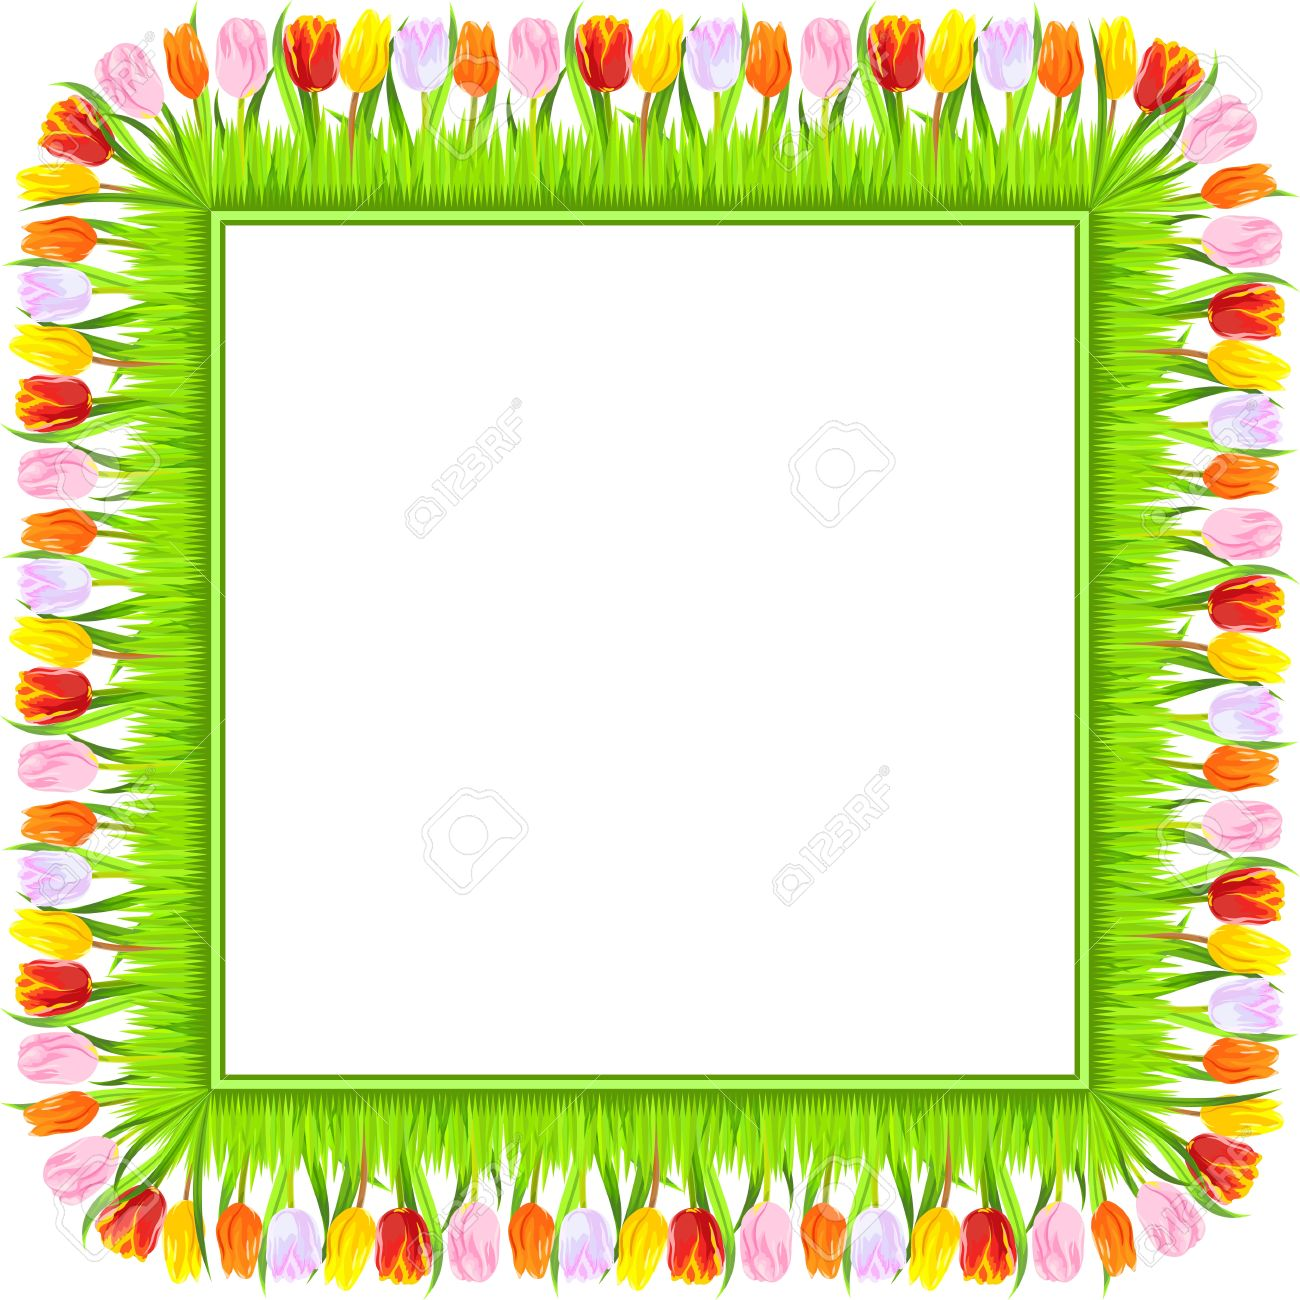 Square Frame Of Colorful Spring Tulips Red, Yellow, Pink, Orange.